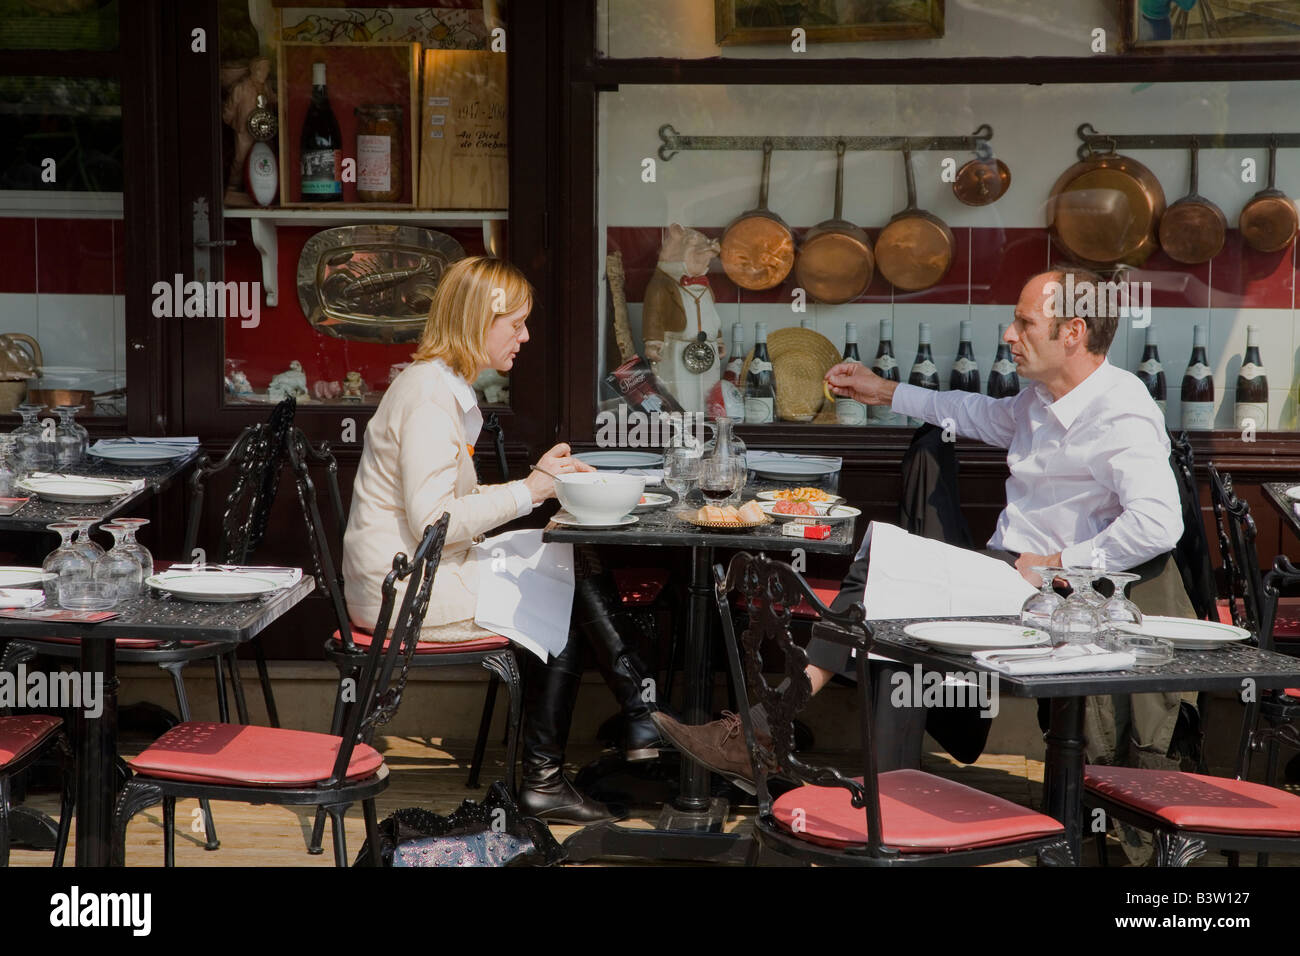 French chefs enjoy alfresco lunch in pavement cafe restaurant France Europe EU - Stock Image